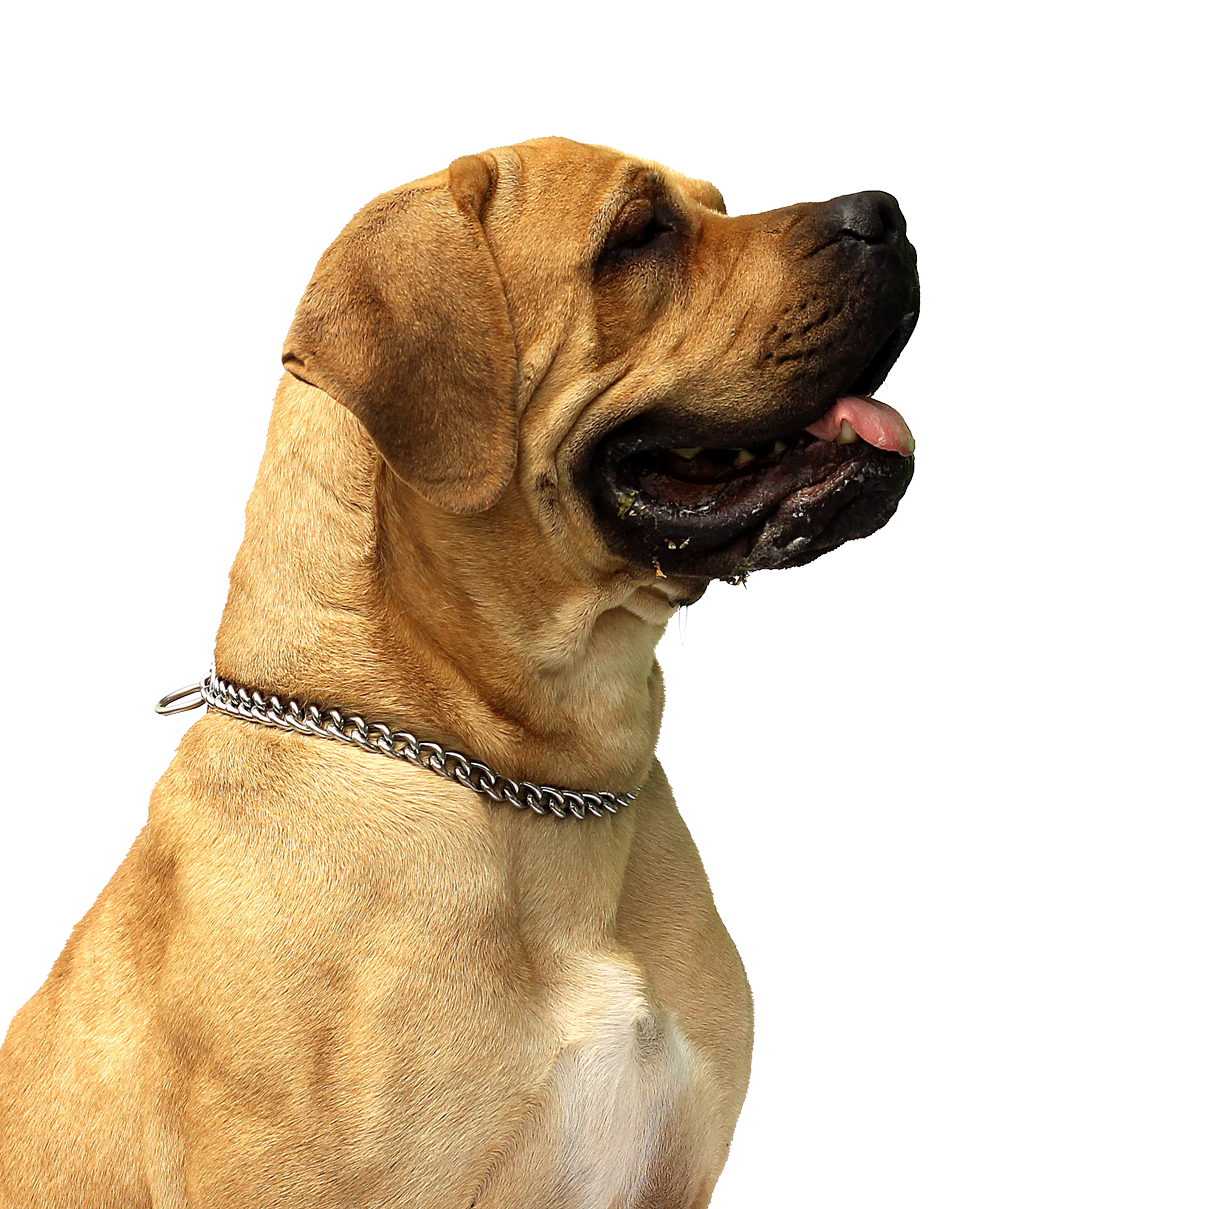 PlusPNG - Dog PNG